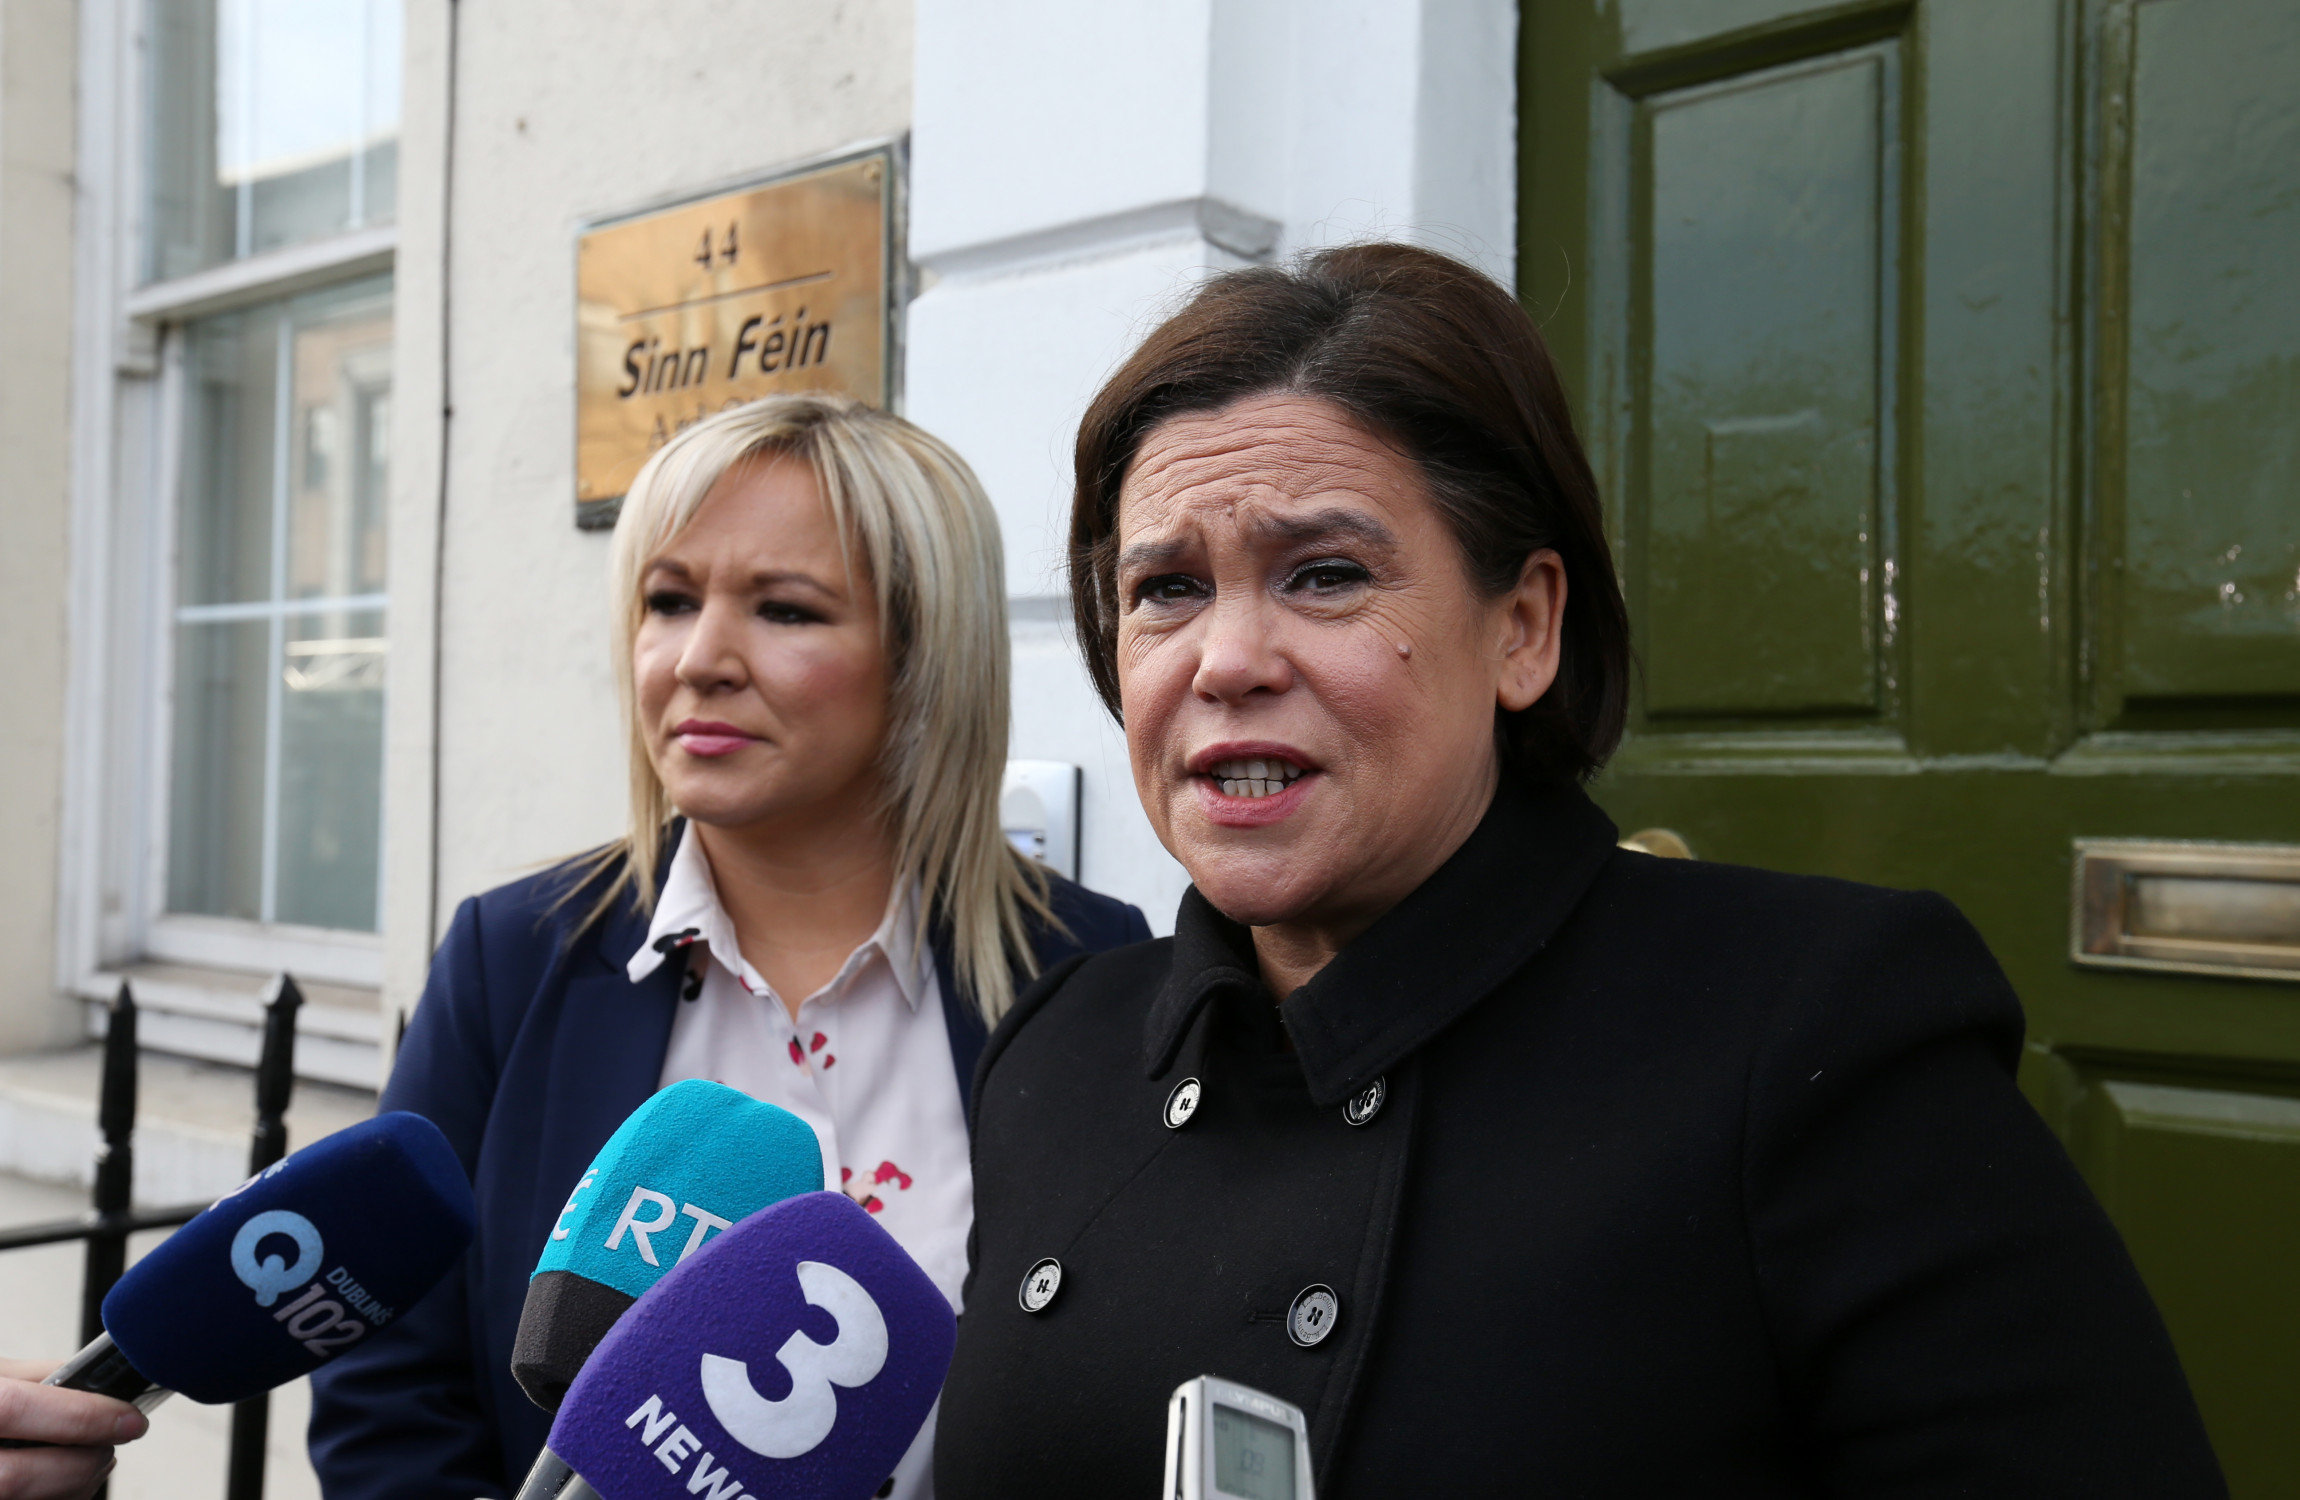 SF leaders to meet Varadkar after talks collapse